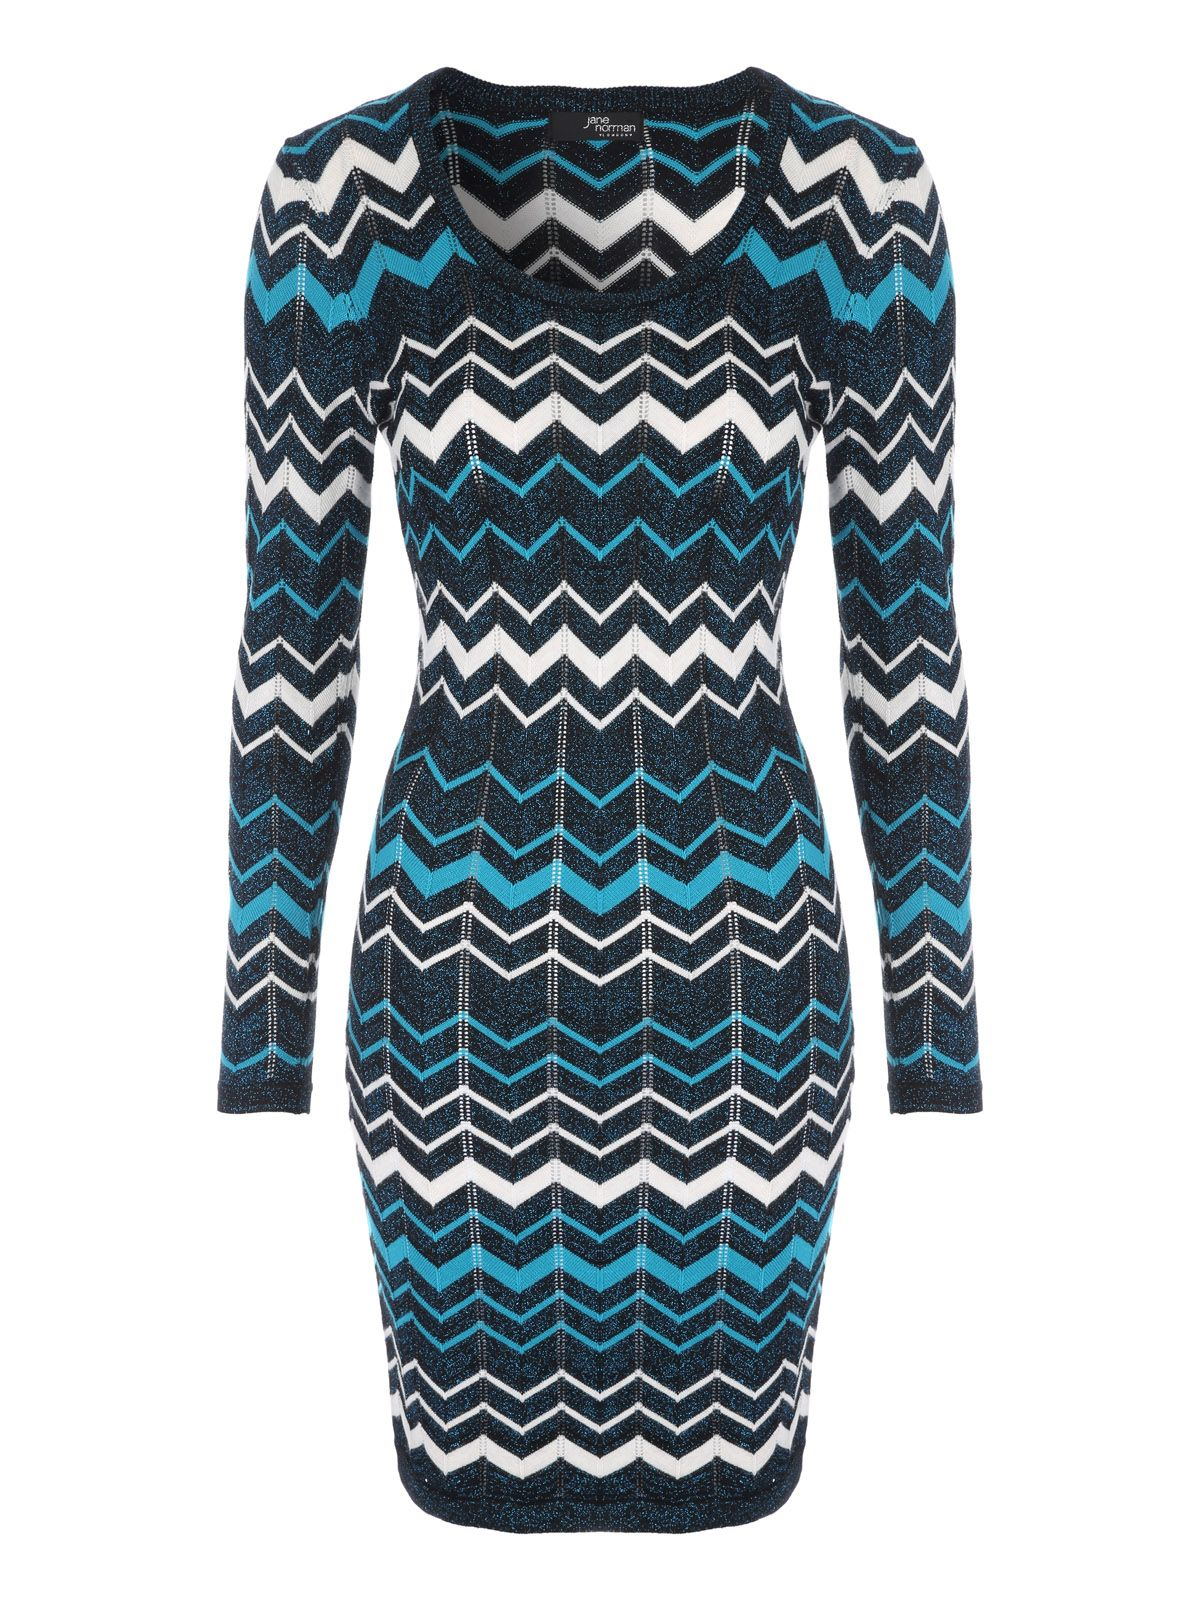 Jane Norman Chevron Jumper Dress, Blue